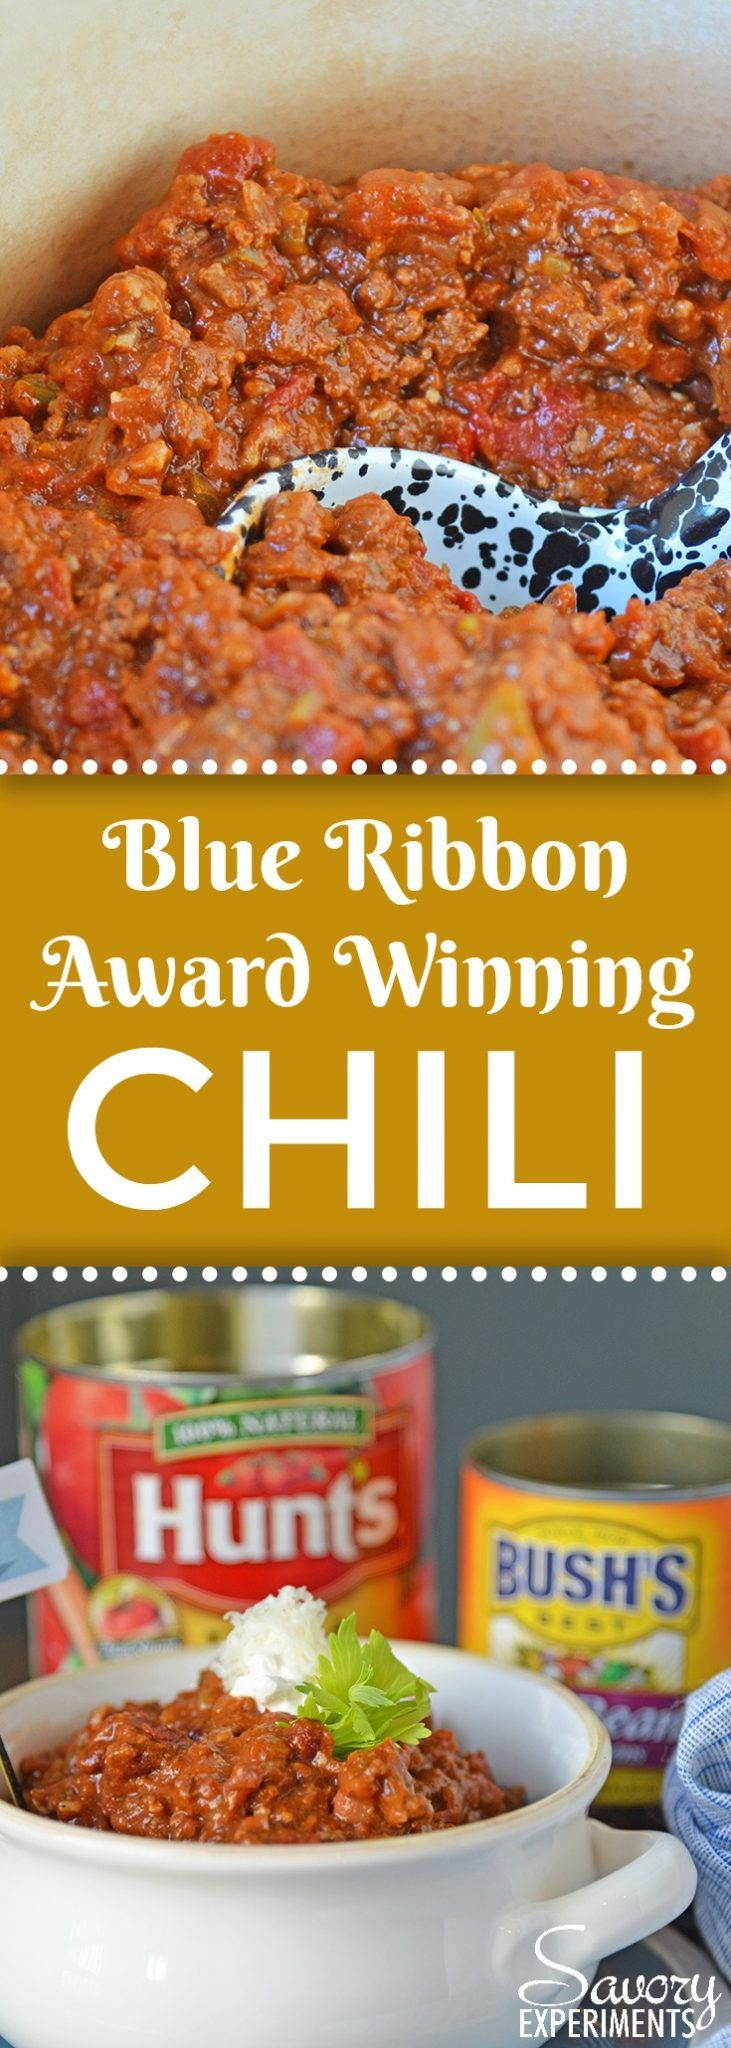 Blue Ribbon Award Winning Chili is, you guessed it, a chili cook-off winning recipe! A robust and rich stew loaded with beef, sausage, bacon and tons of vegetables. The best chili recipe ever! #AD #chilirecipe #awardwinningchili www.savoryexperiments.com